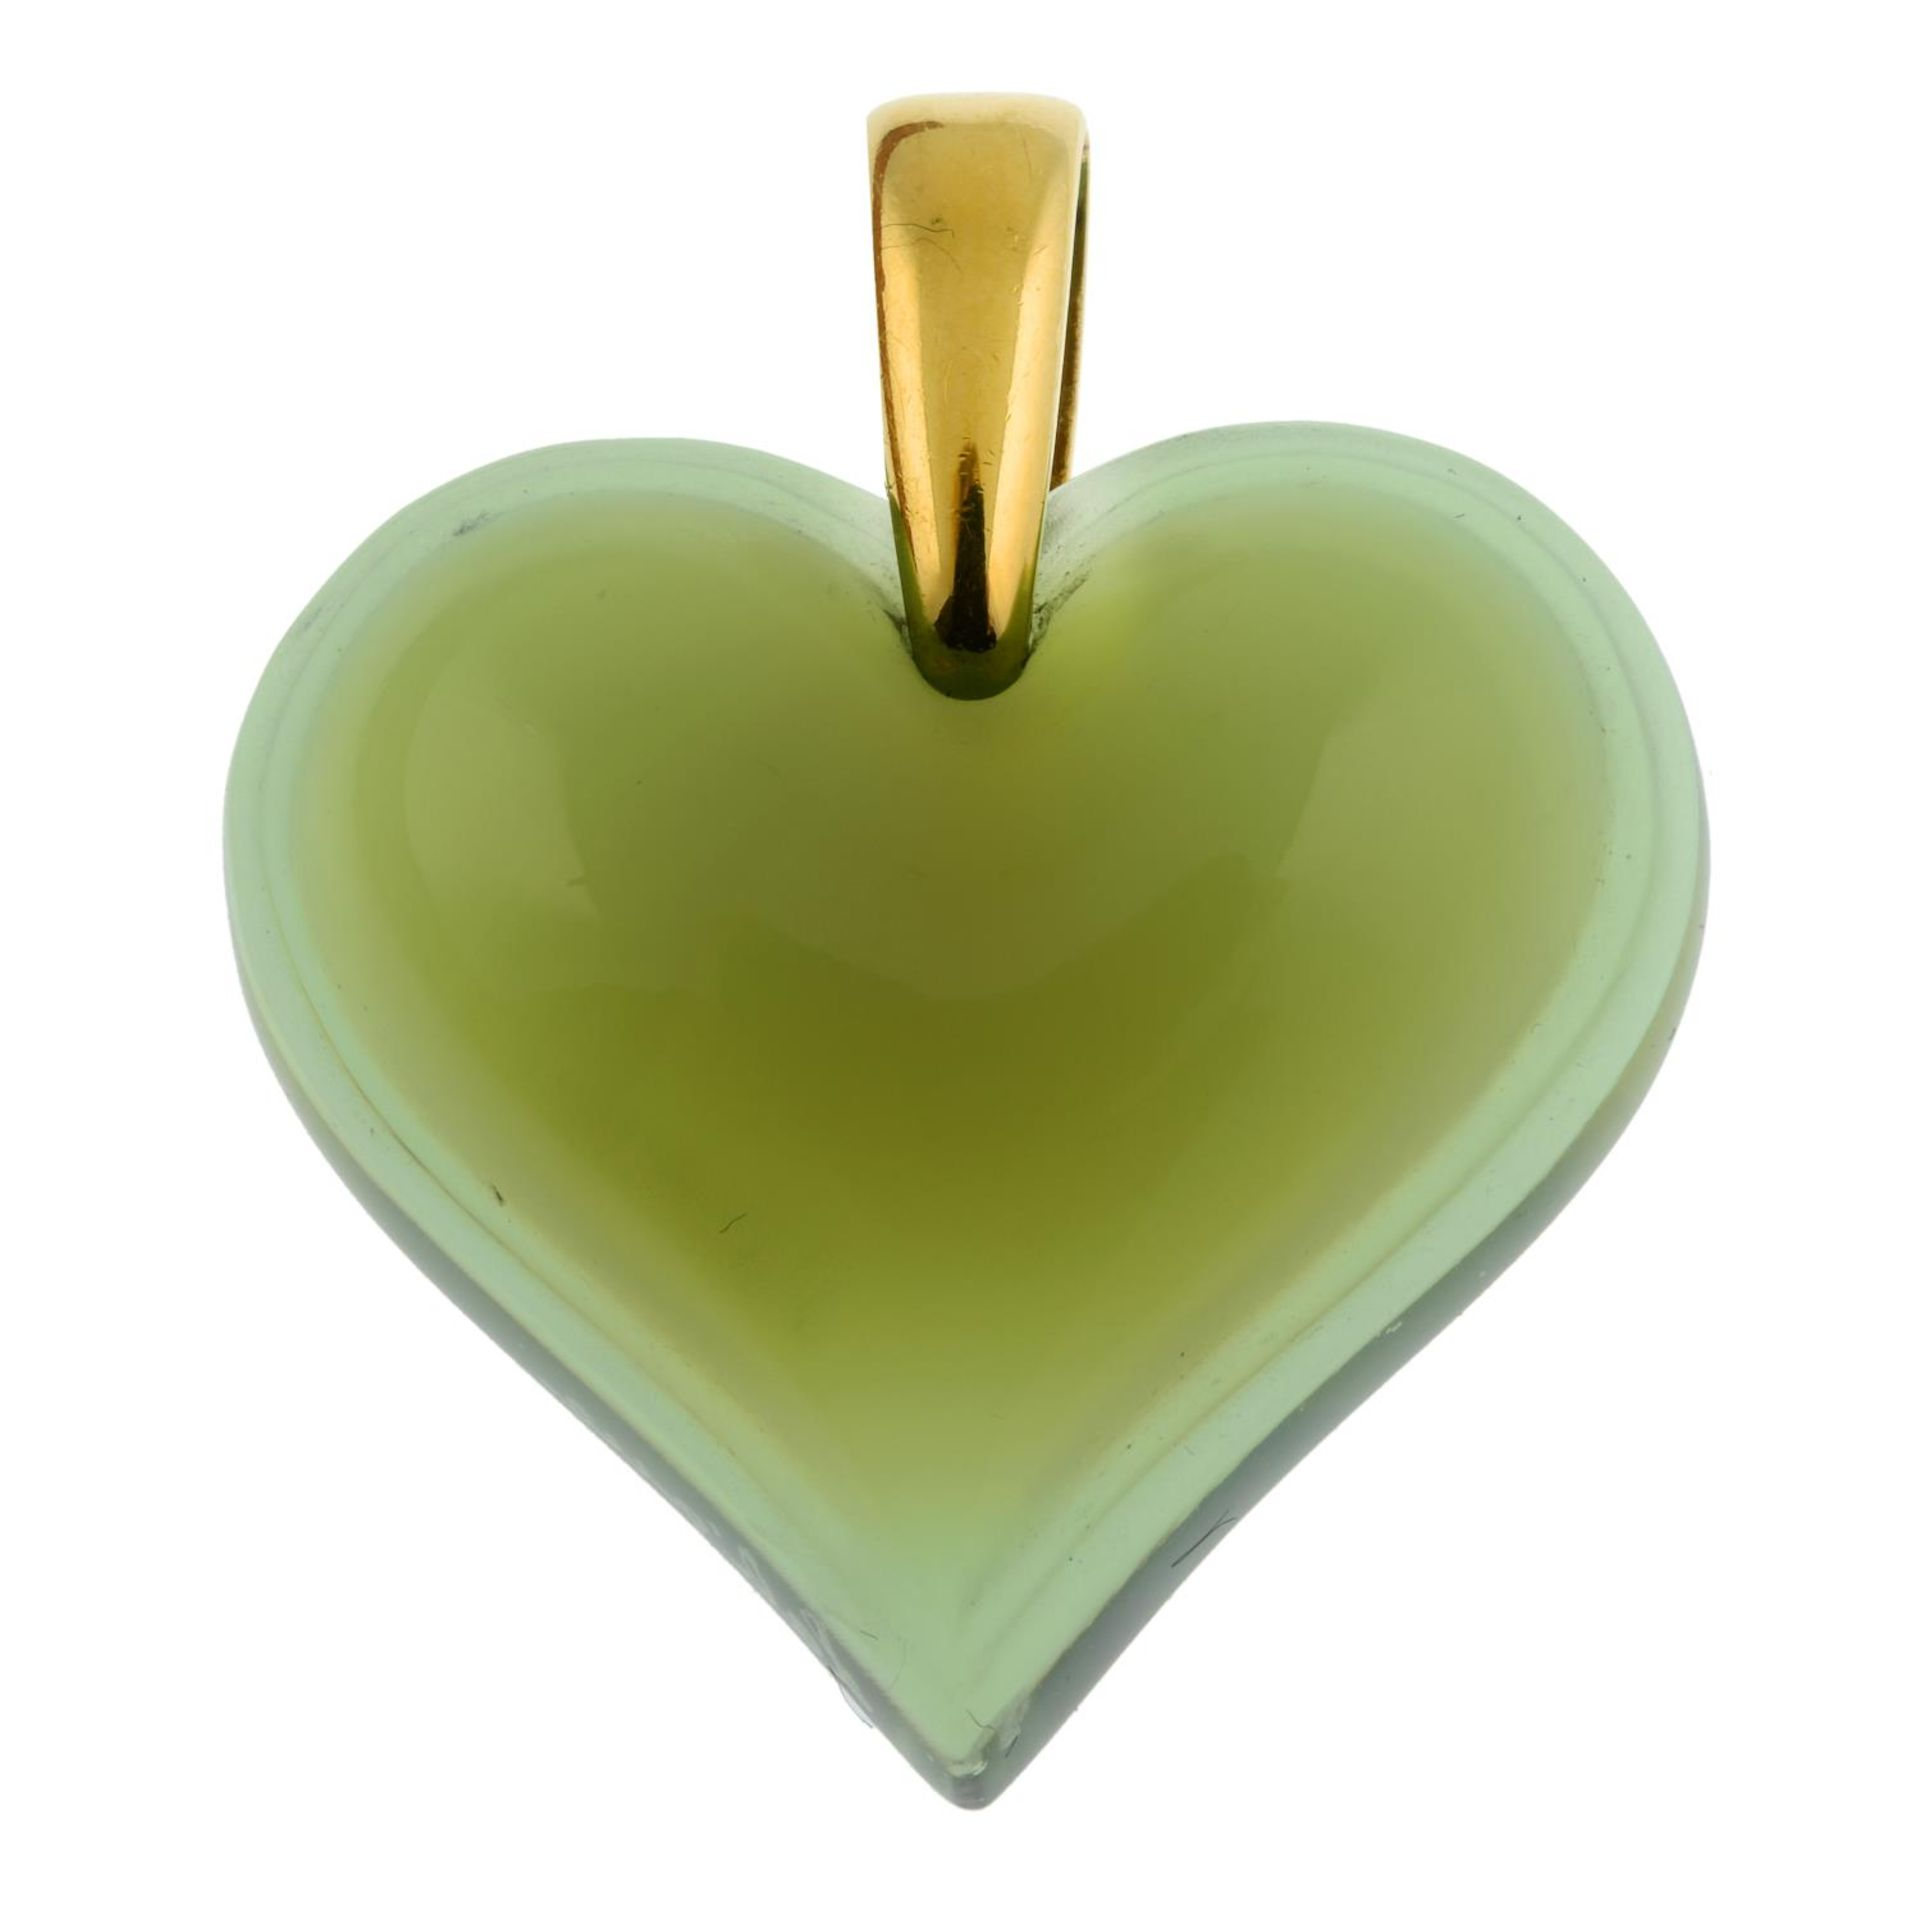 A green glass heart pendant, by Lalique.